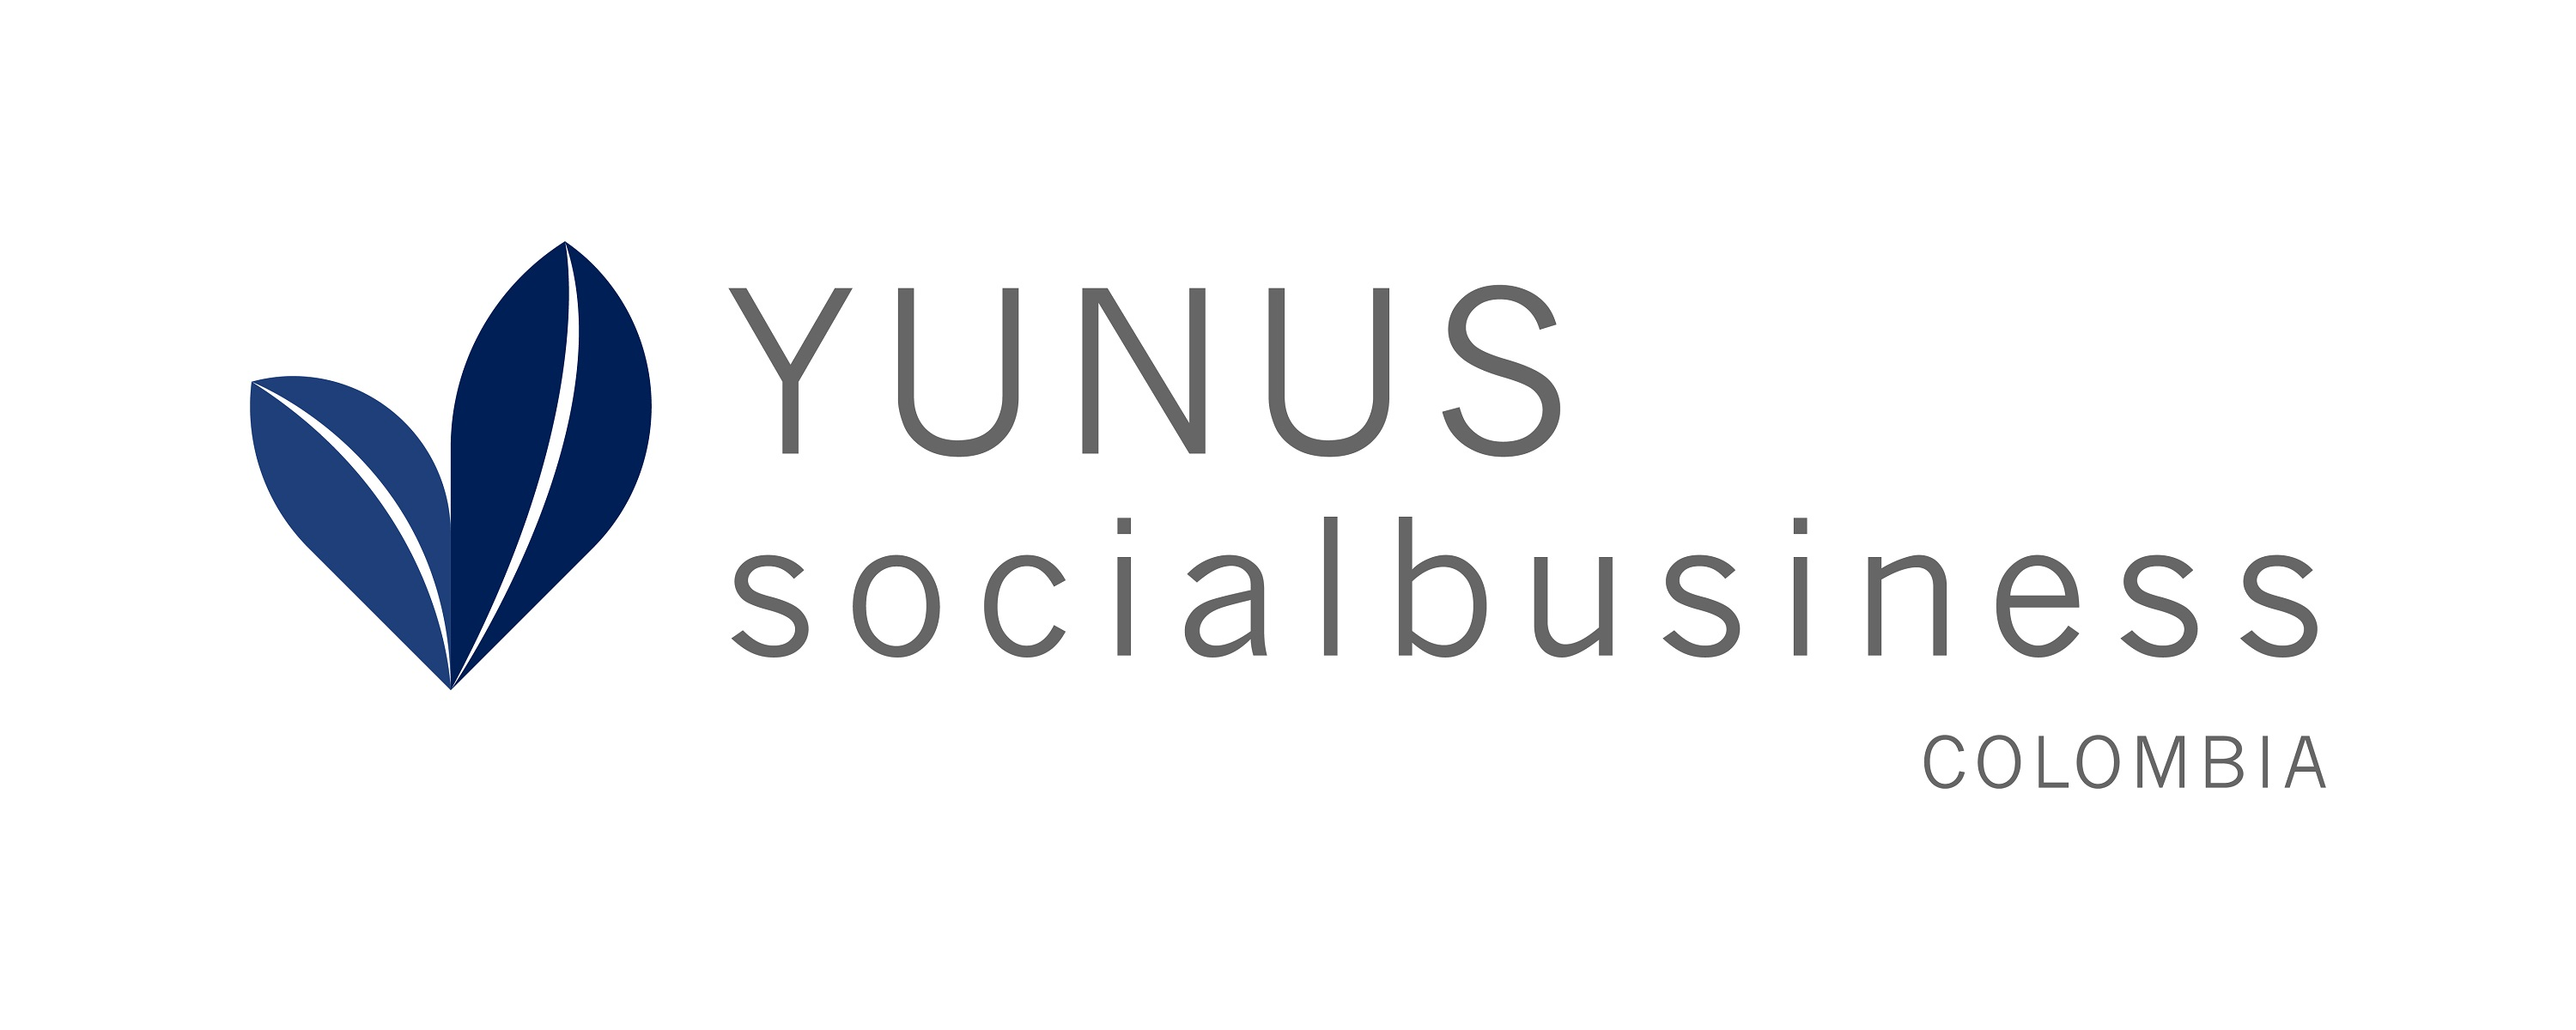 Yunus Social Business Colombia